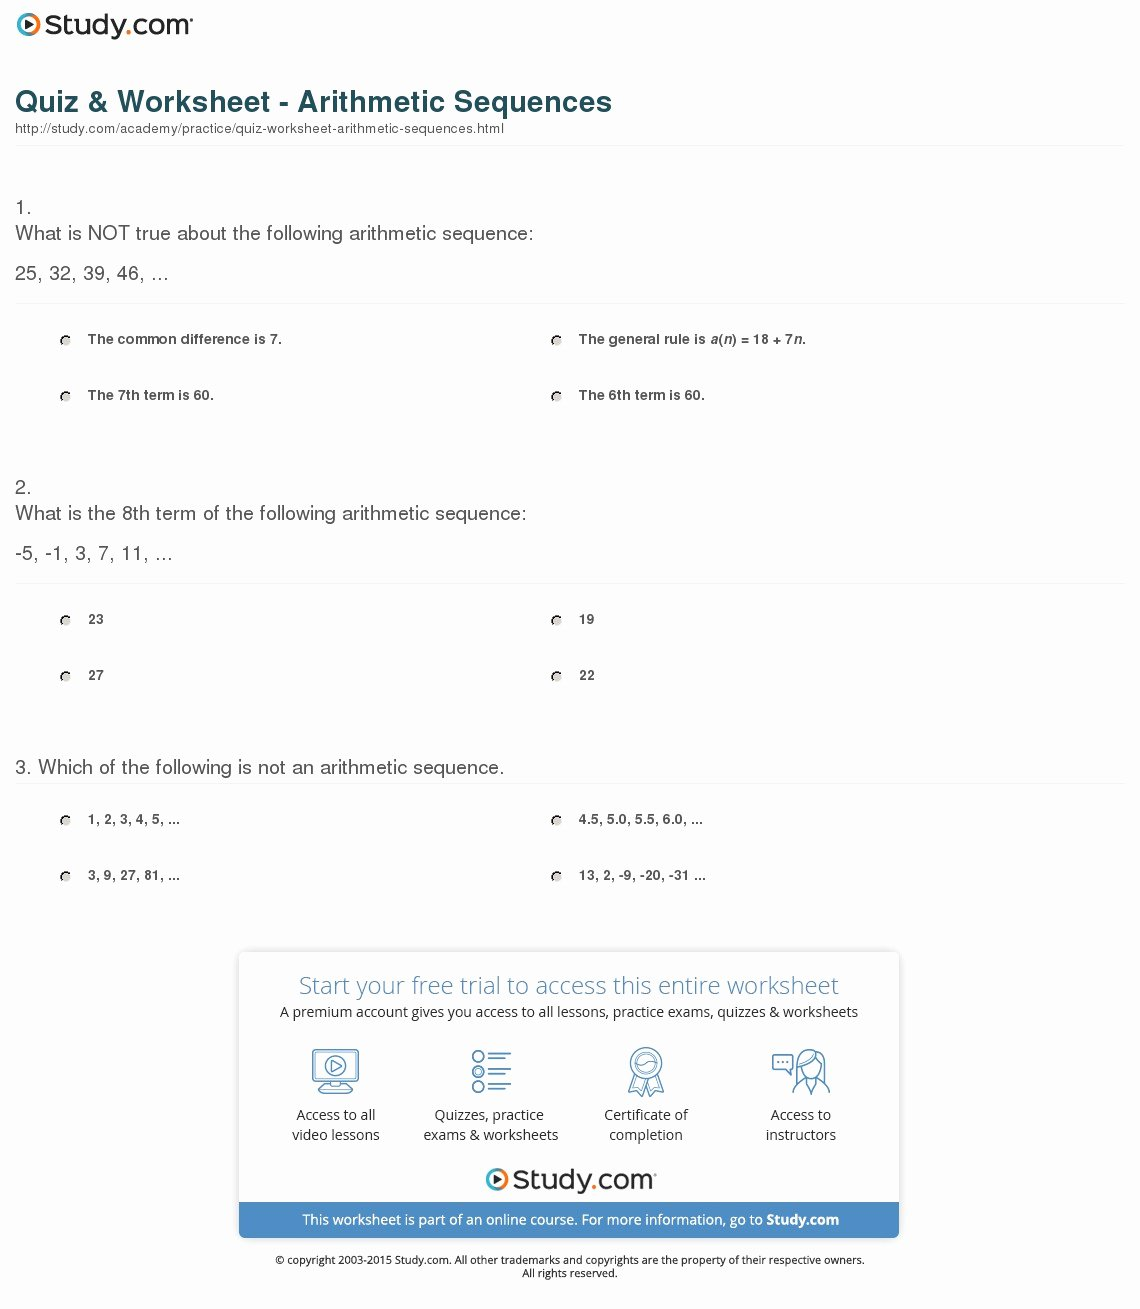 Geometric Sequence Practice Worksheet Fresh Quiz & Worksheet Arithmetic Sequences